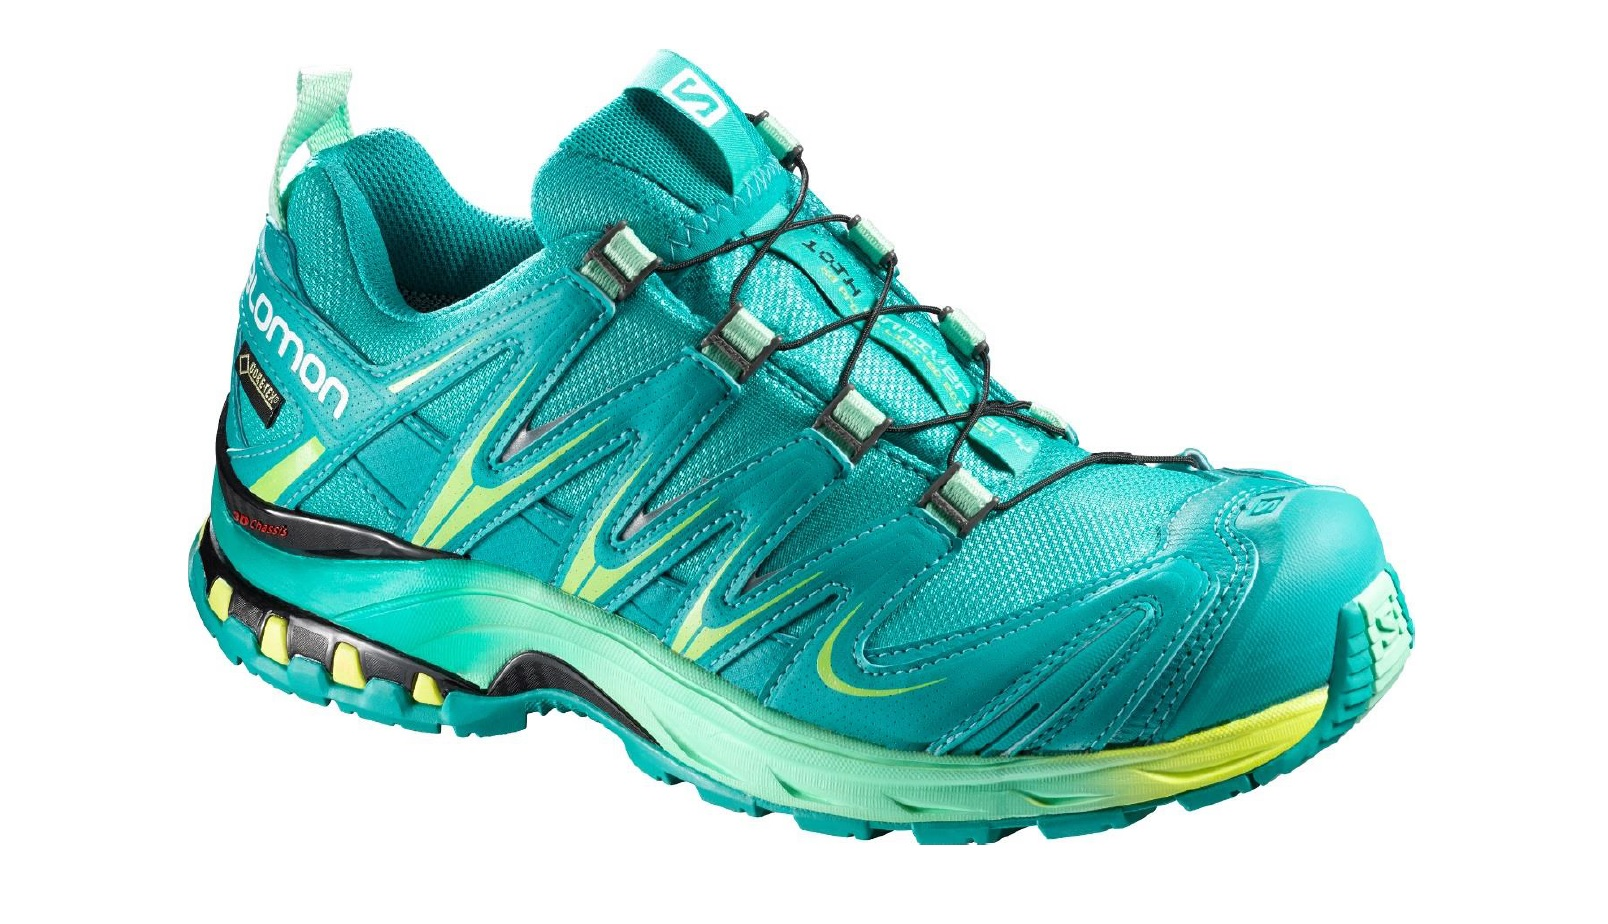 Salomon XA PRO 3D GTX® W 10-YR LTD ED TEAL -50%